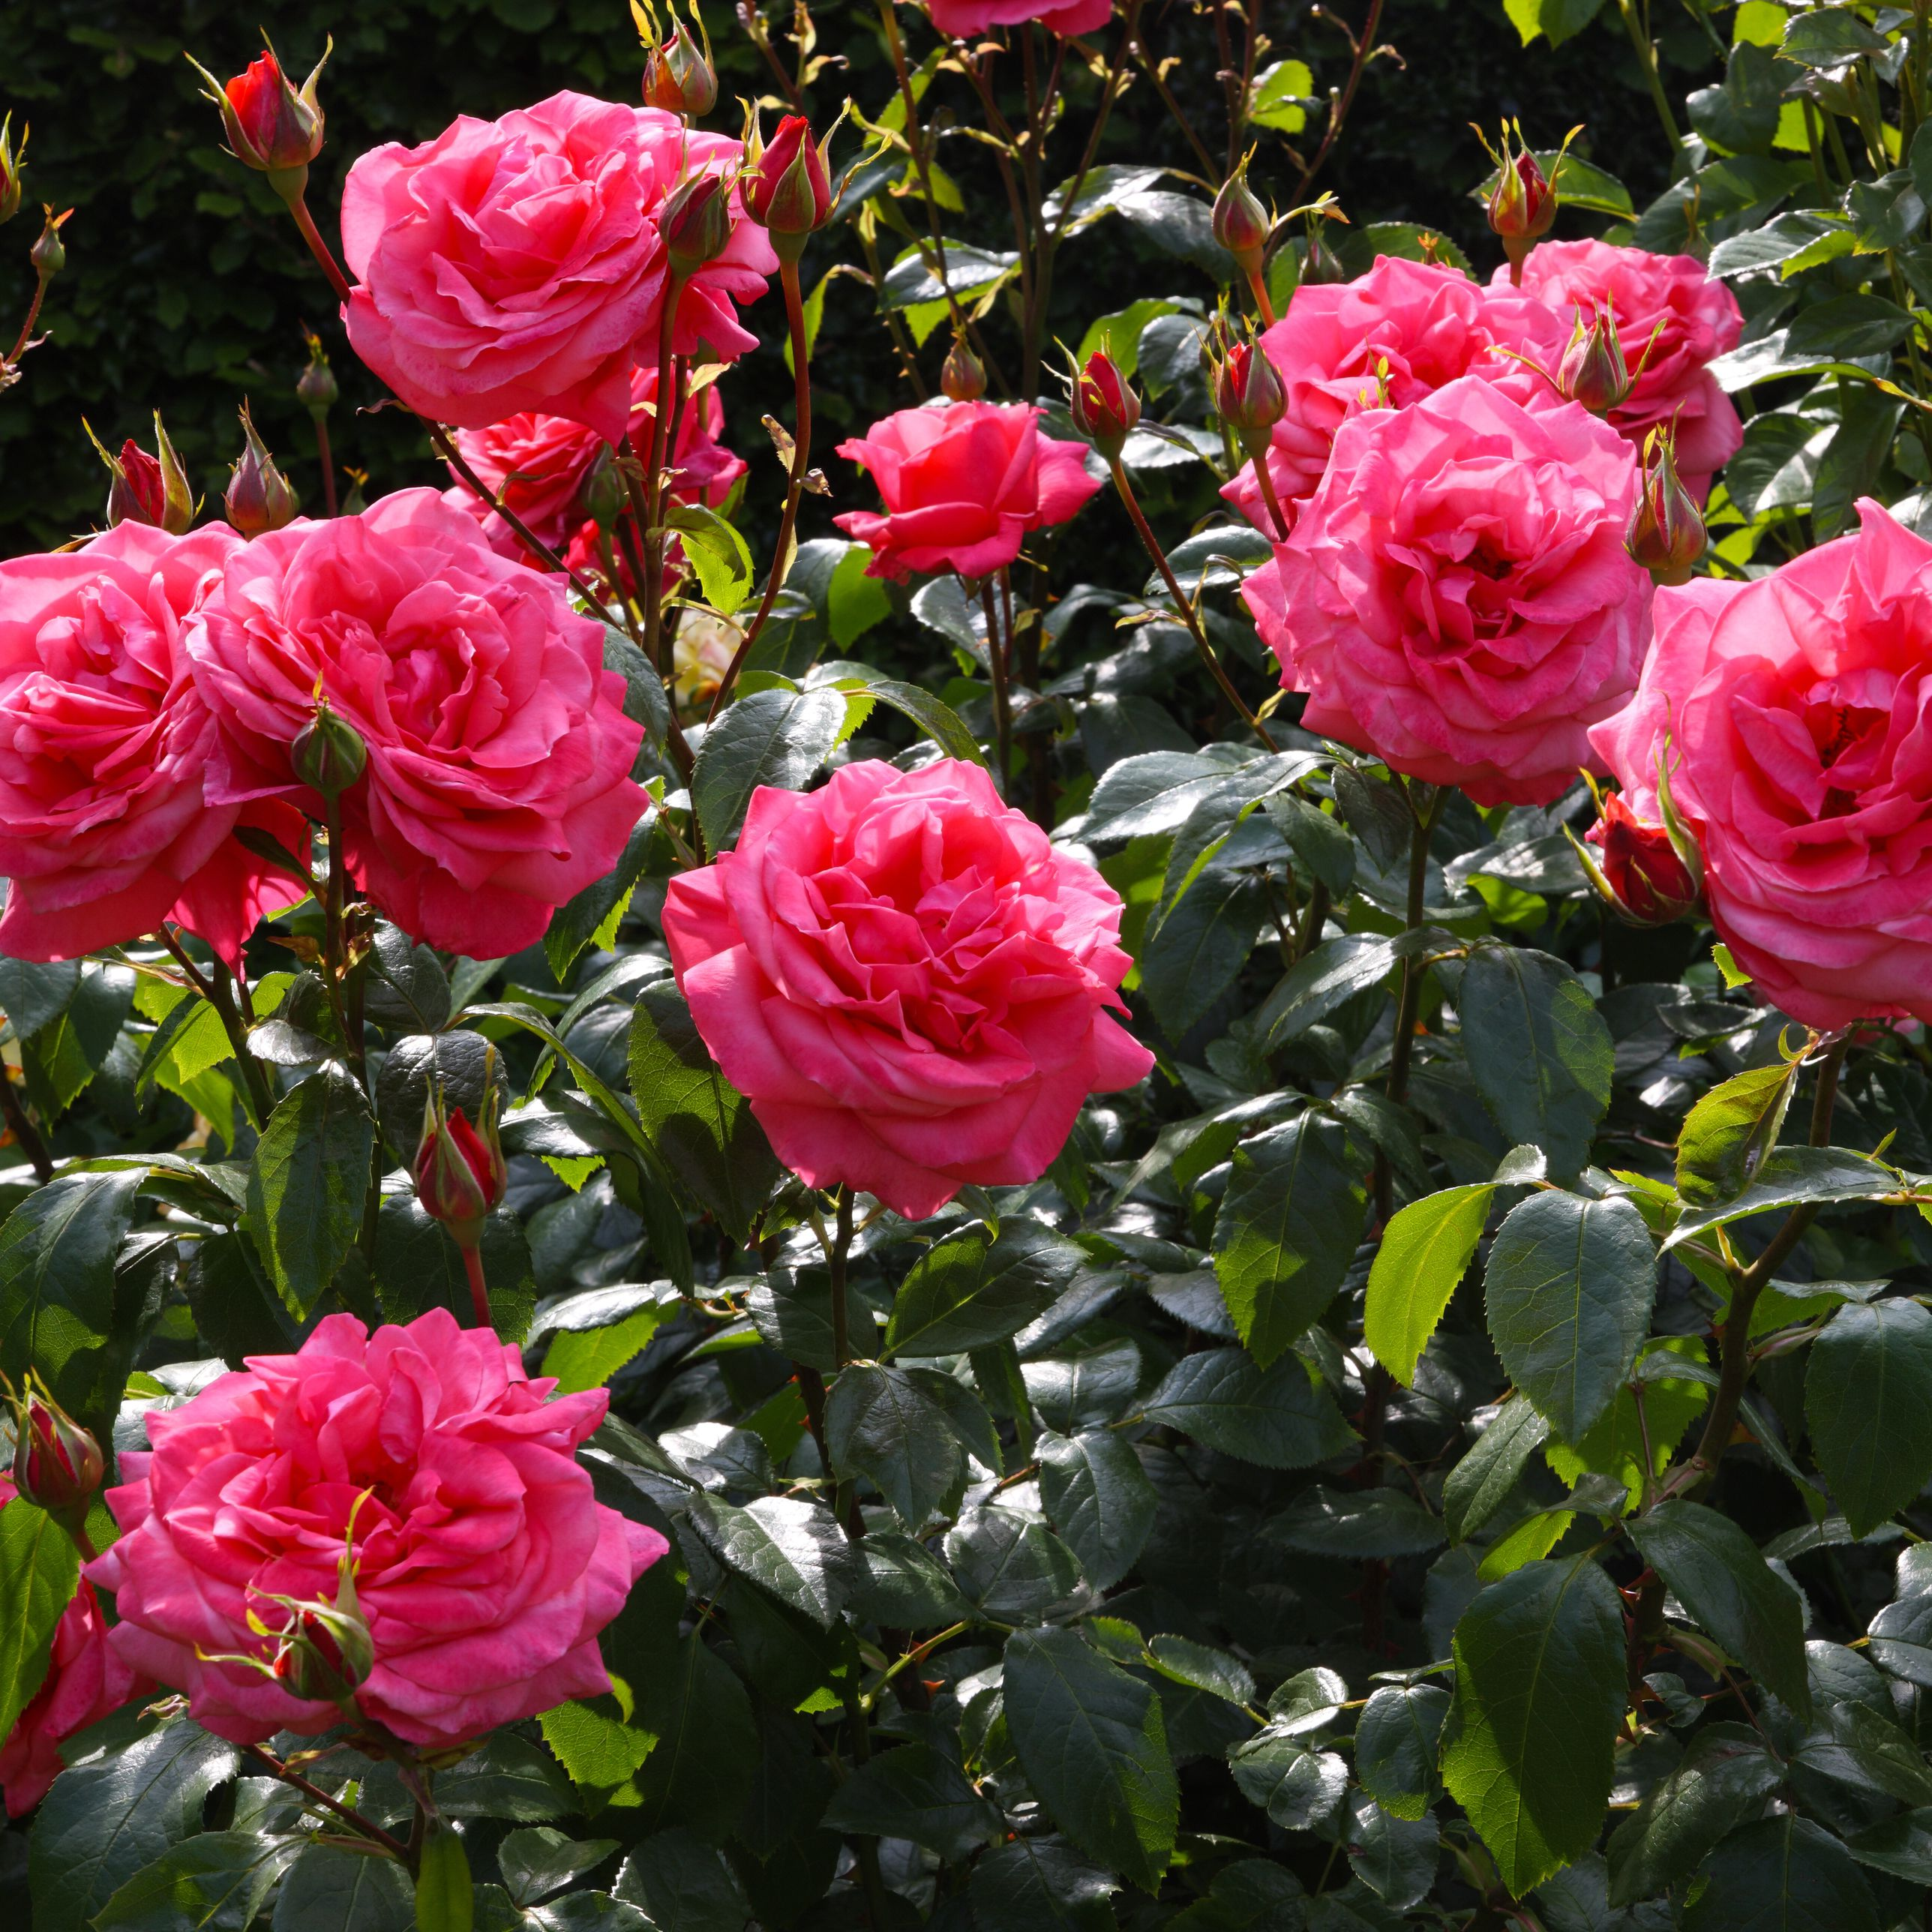 How To Get More Blooms From Your Roses